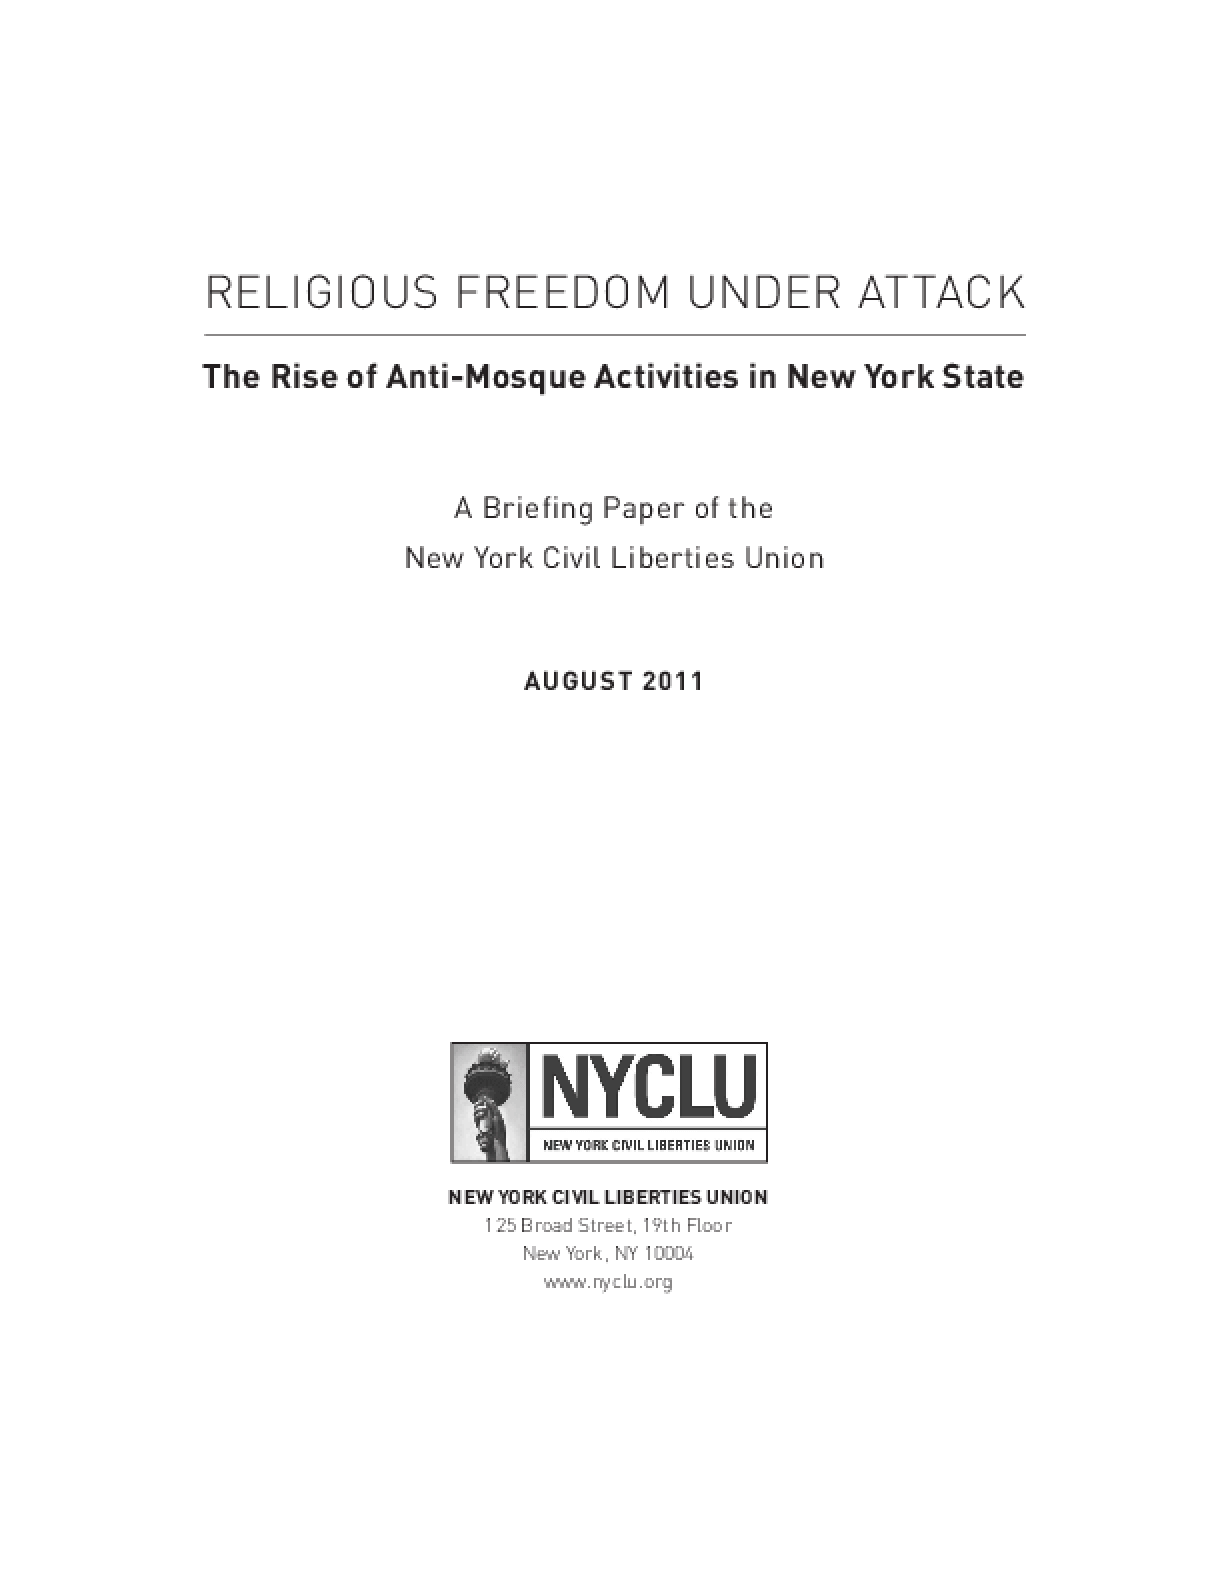 Religious Freedom Under Attack: The Rise of Anti-Mosque Activities in New York State